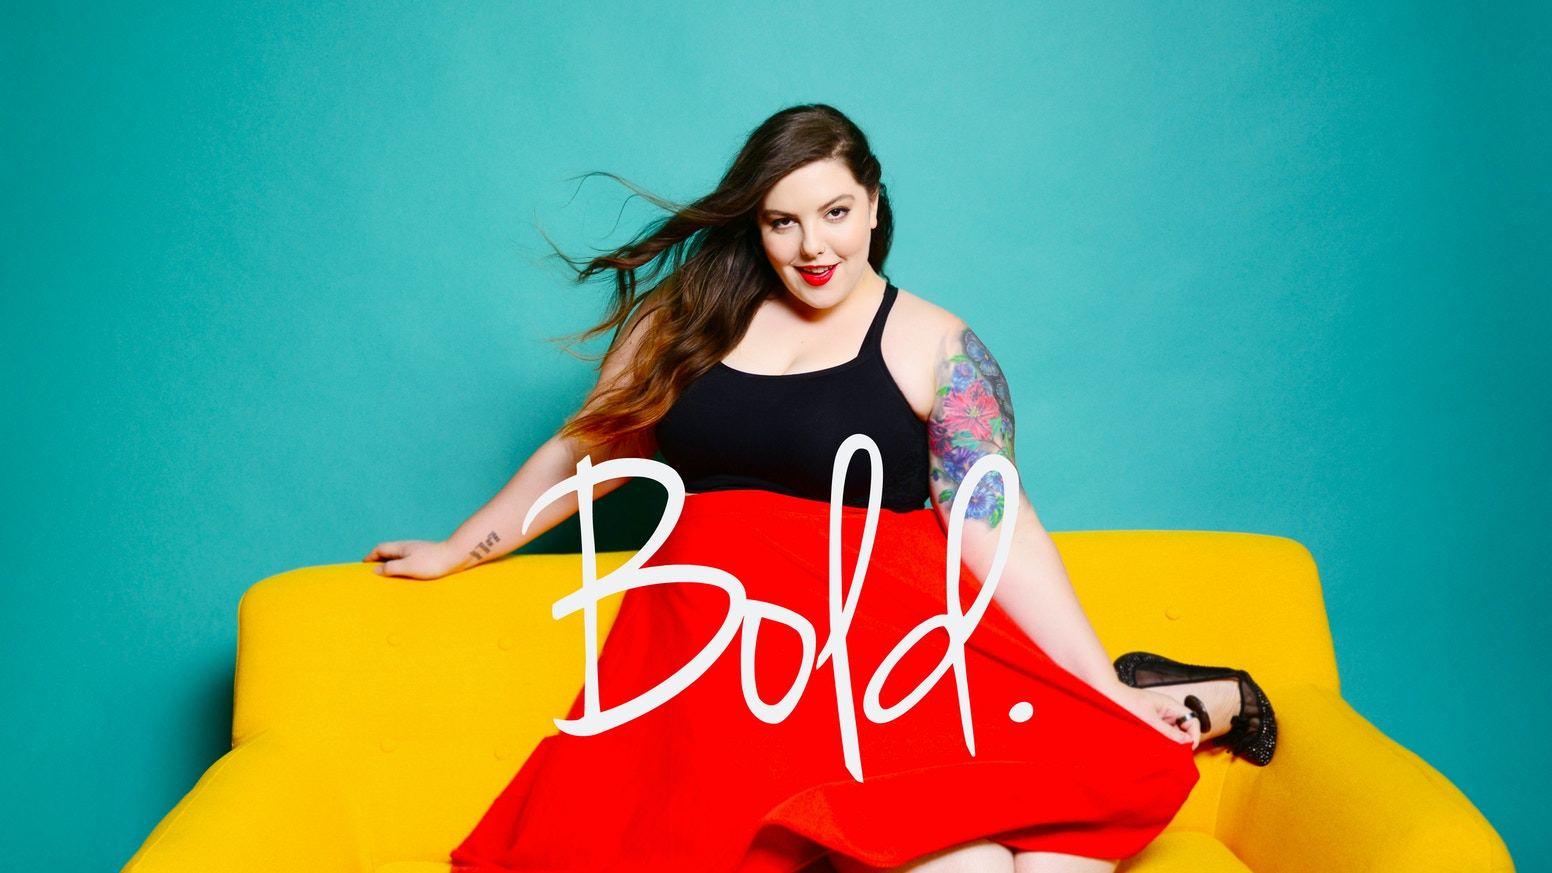 Bold Ep And Tour By Mary Kickstarter